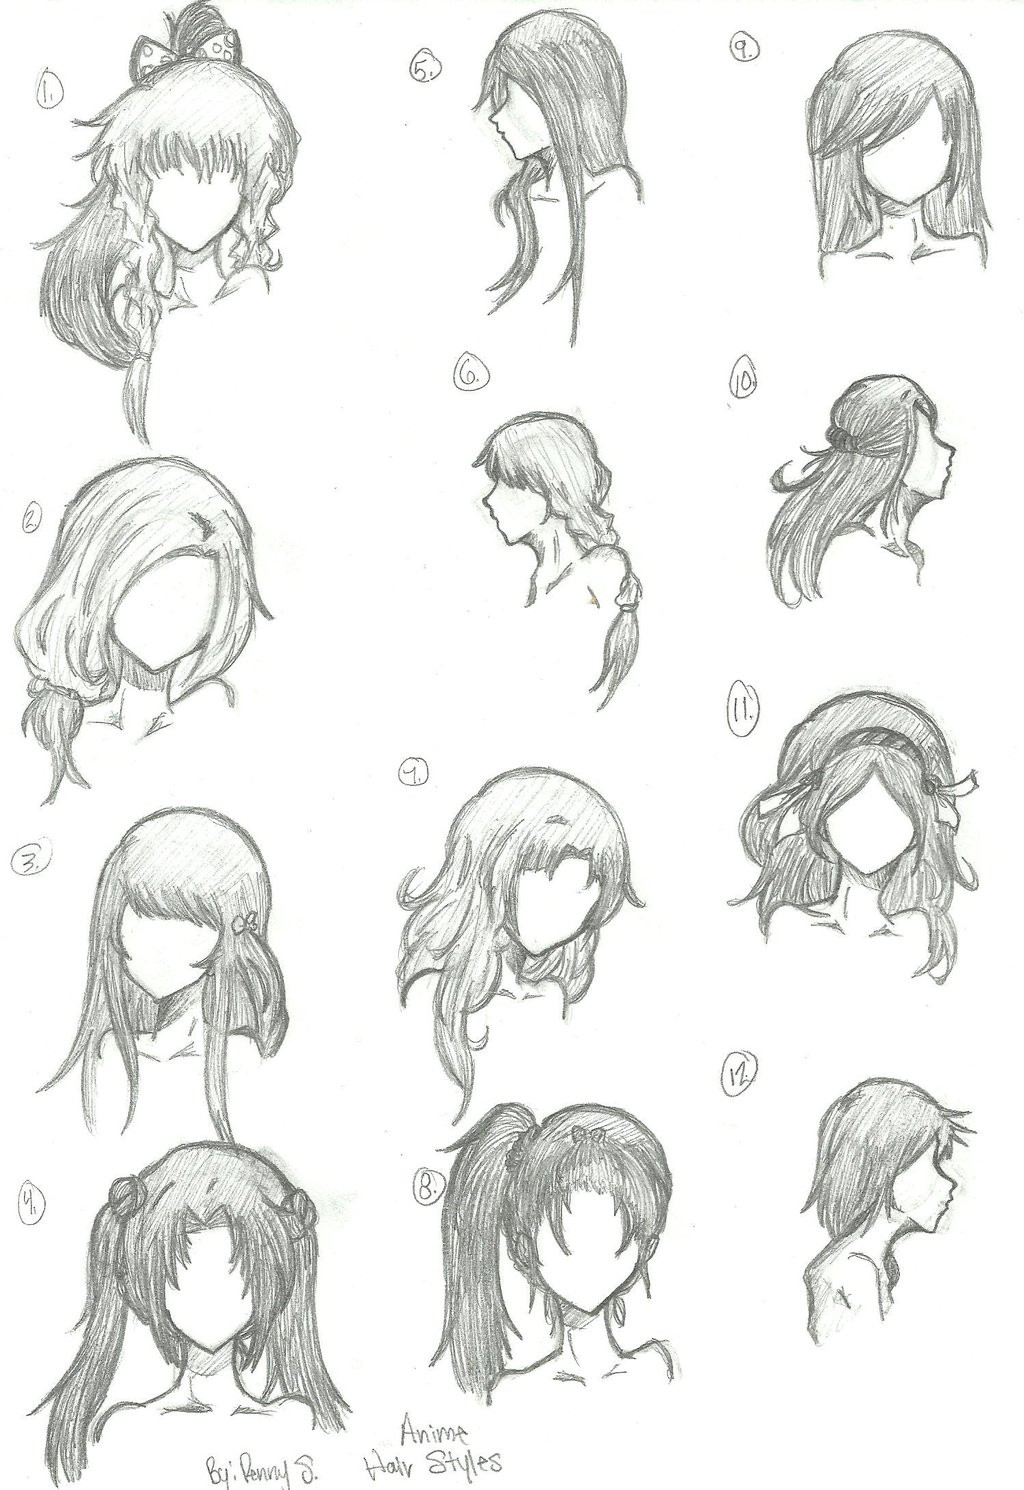 Best ideas about Easy Anime Hairstyles . Save or Pin Hair Styles 1 12 by animebleach14 on DeviantArt Now.